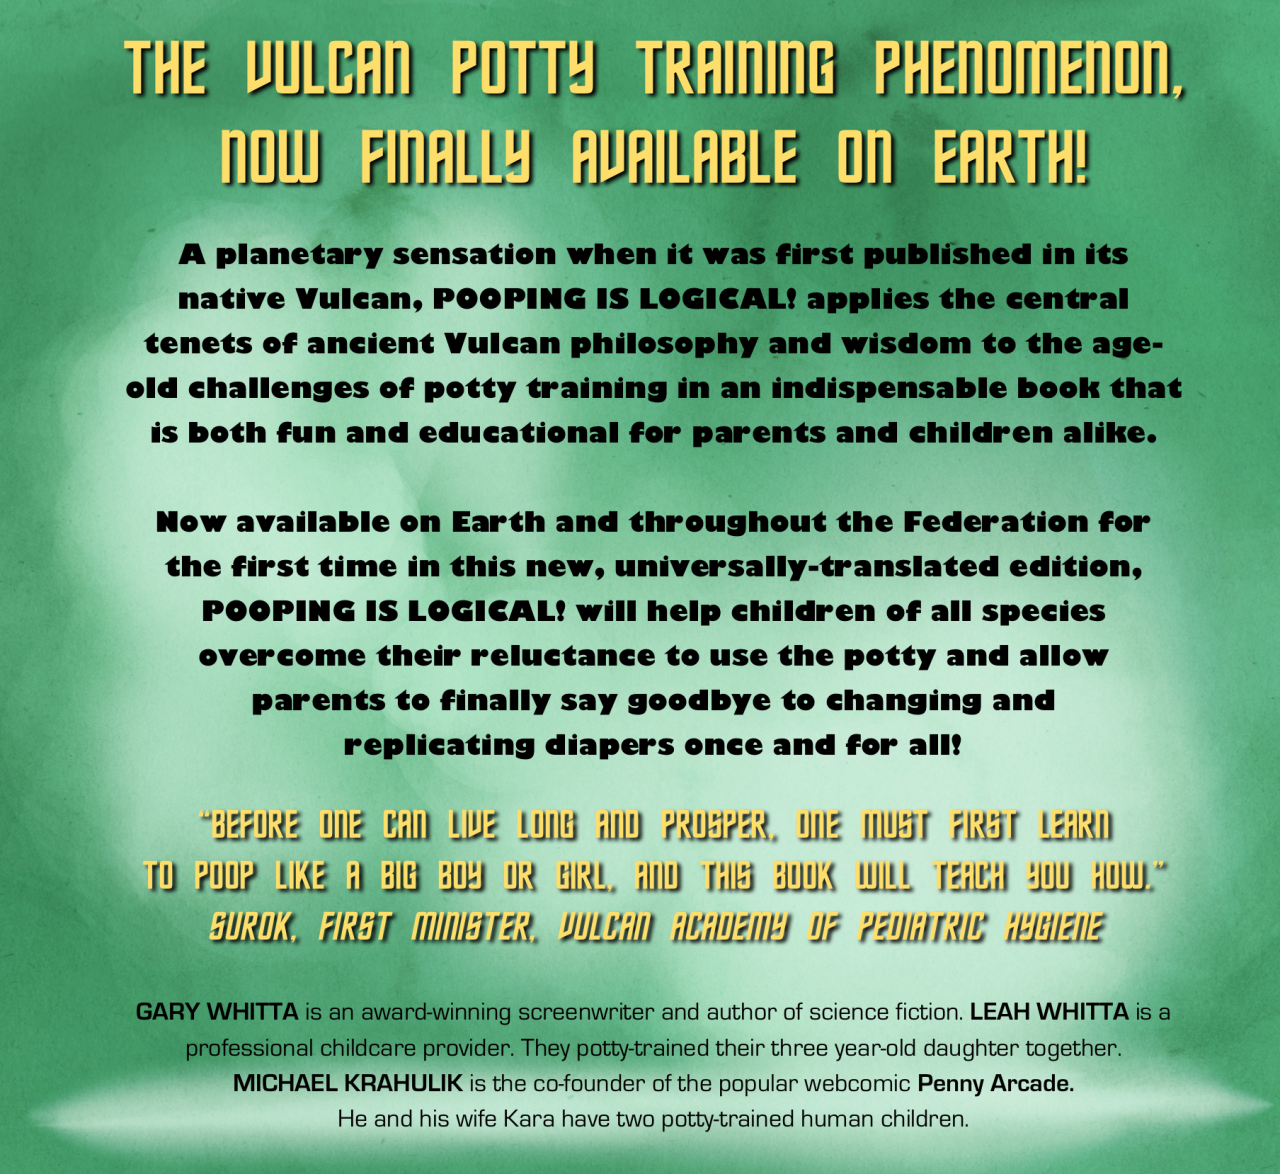 pooping-is-logical-star-trek-potty-training-book-based-on-vulcan-principles1